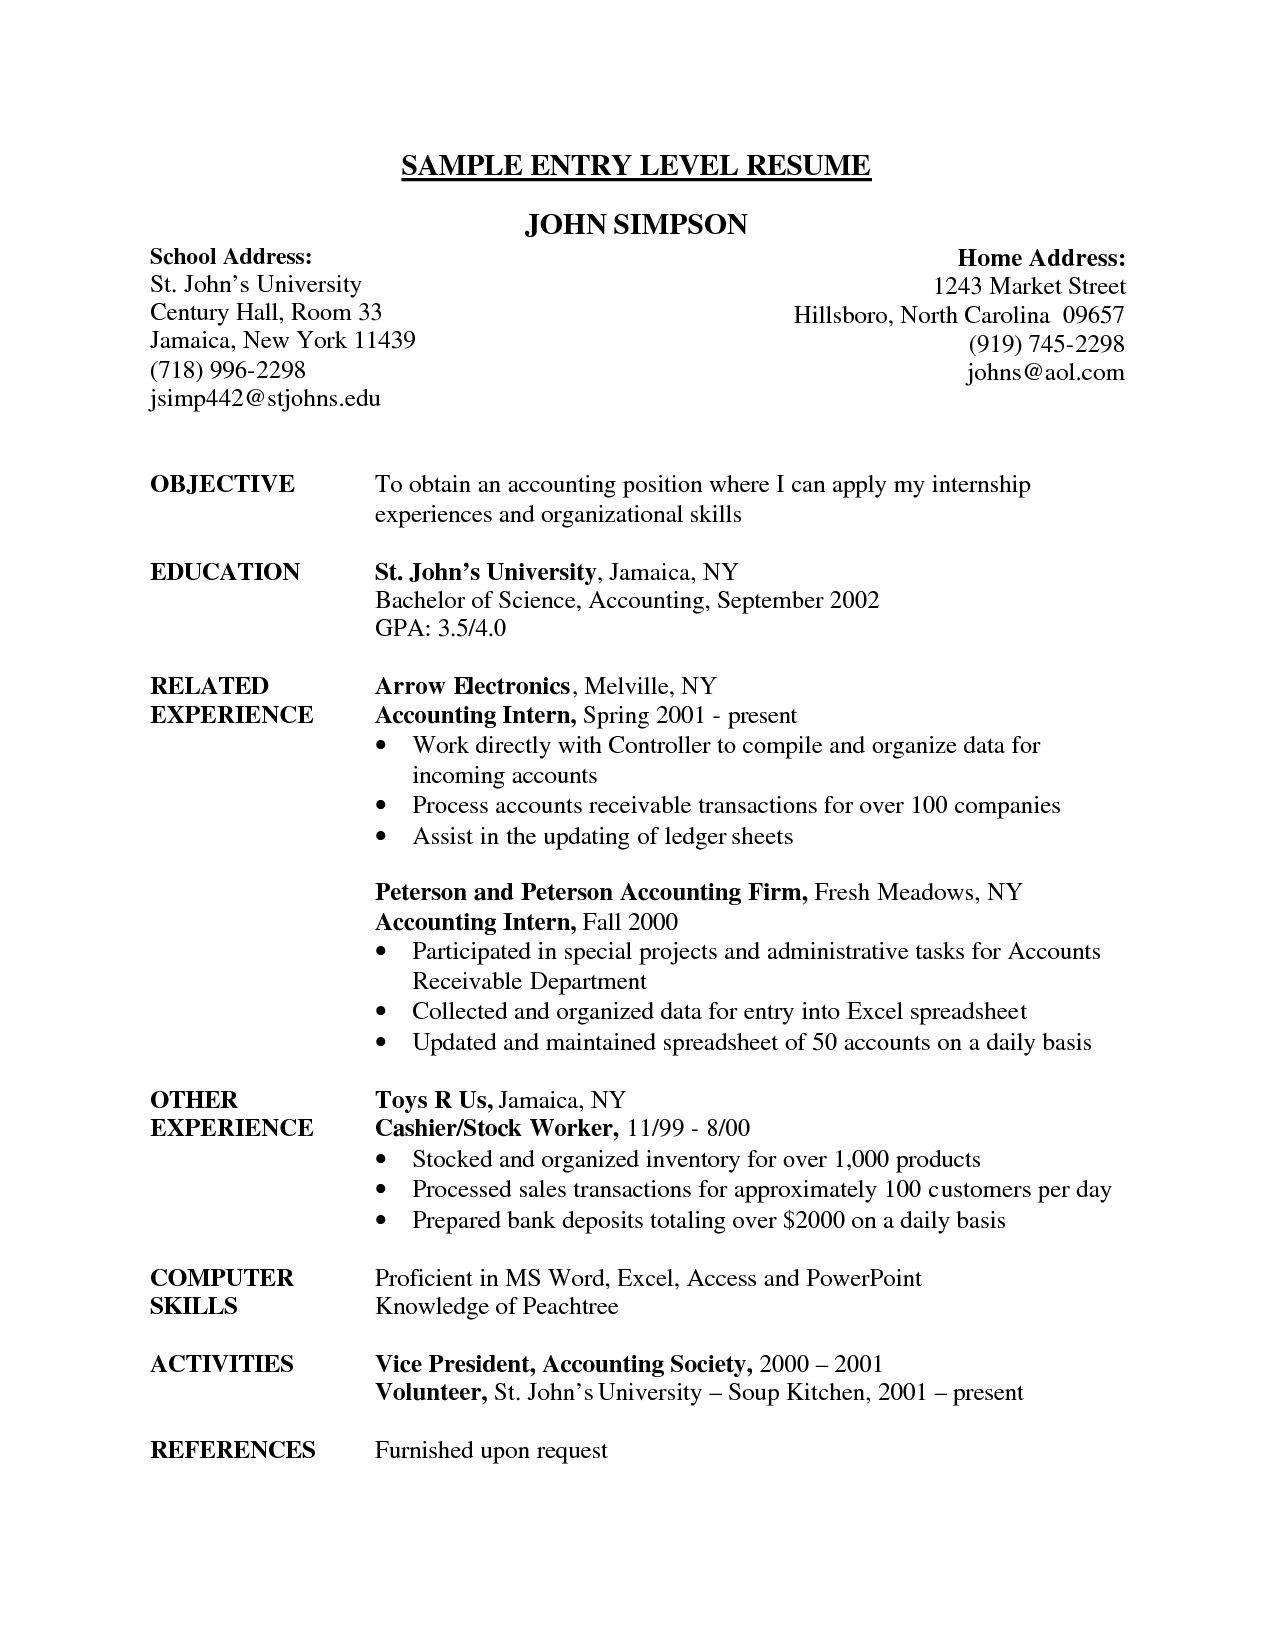 Accounting Internship Resume Objective Resume Examples Entry Level  Resume Examples  Pinterest  Resume .